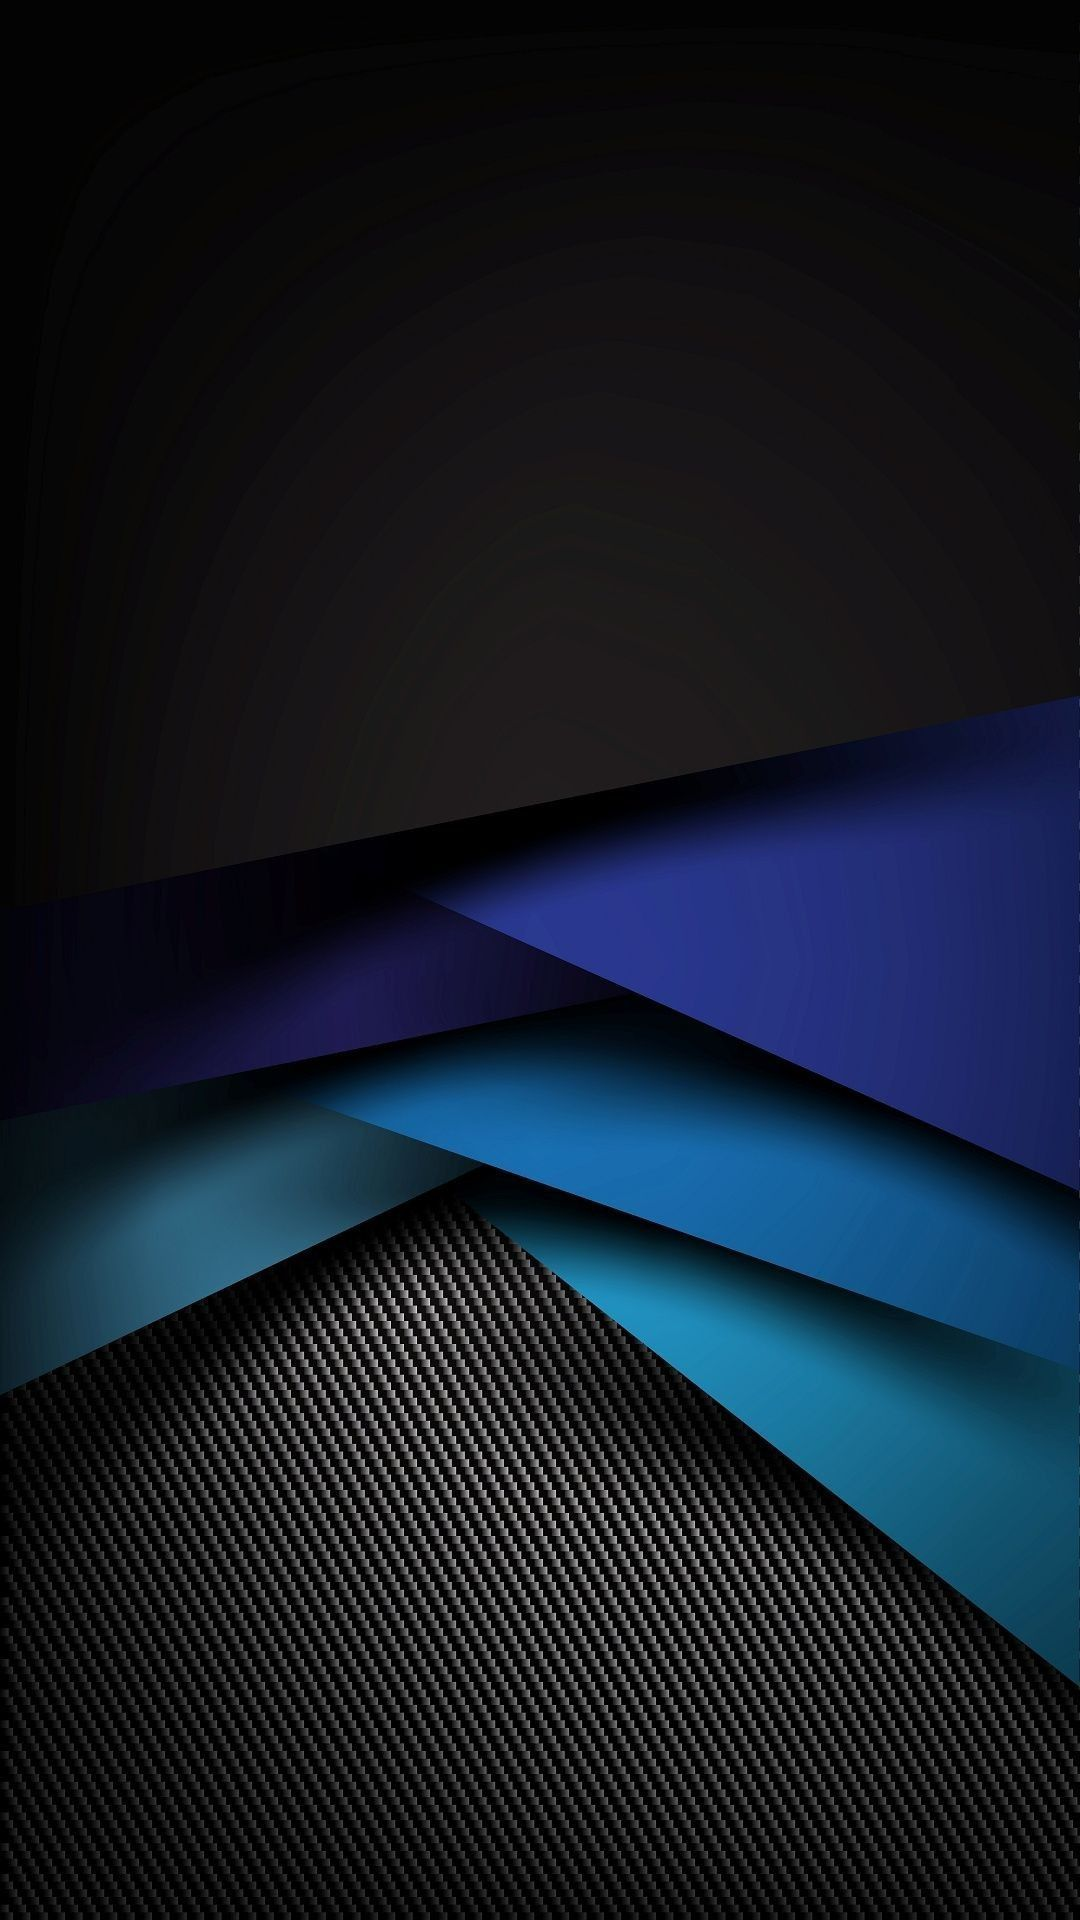 Abstract Mobile Wallpapers Top Free Abstract Mobile